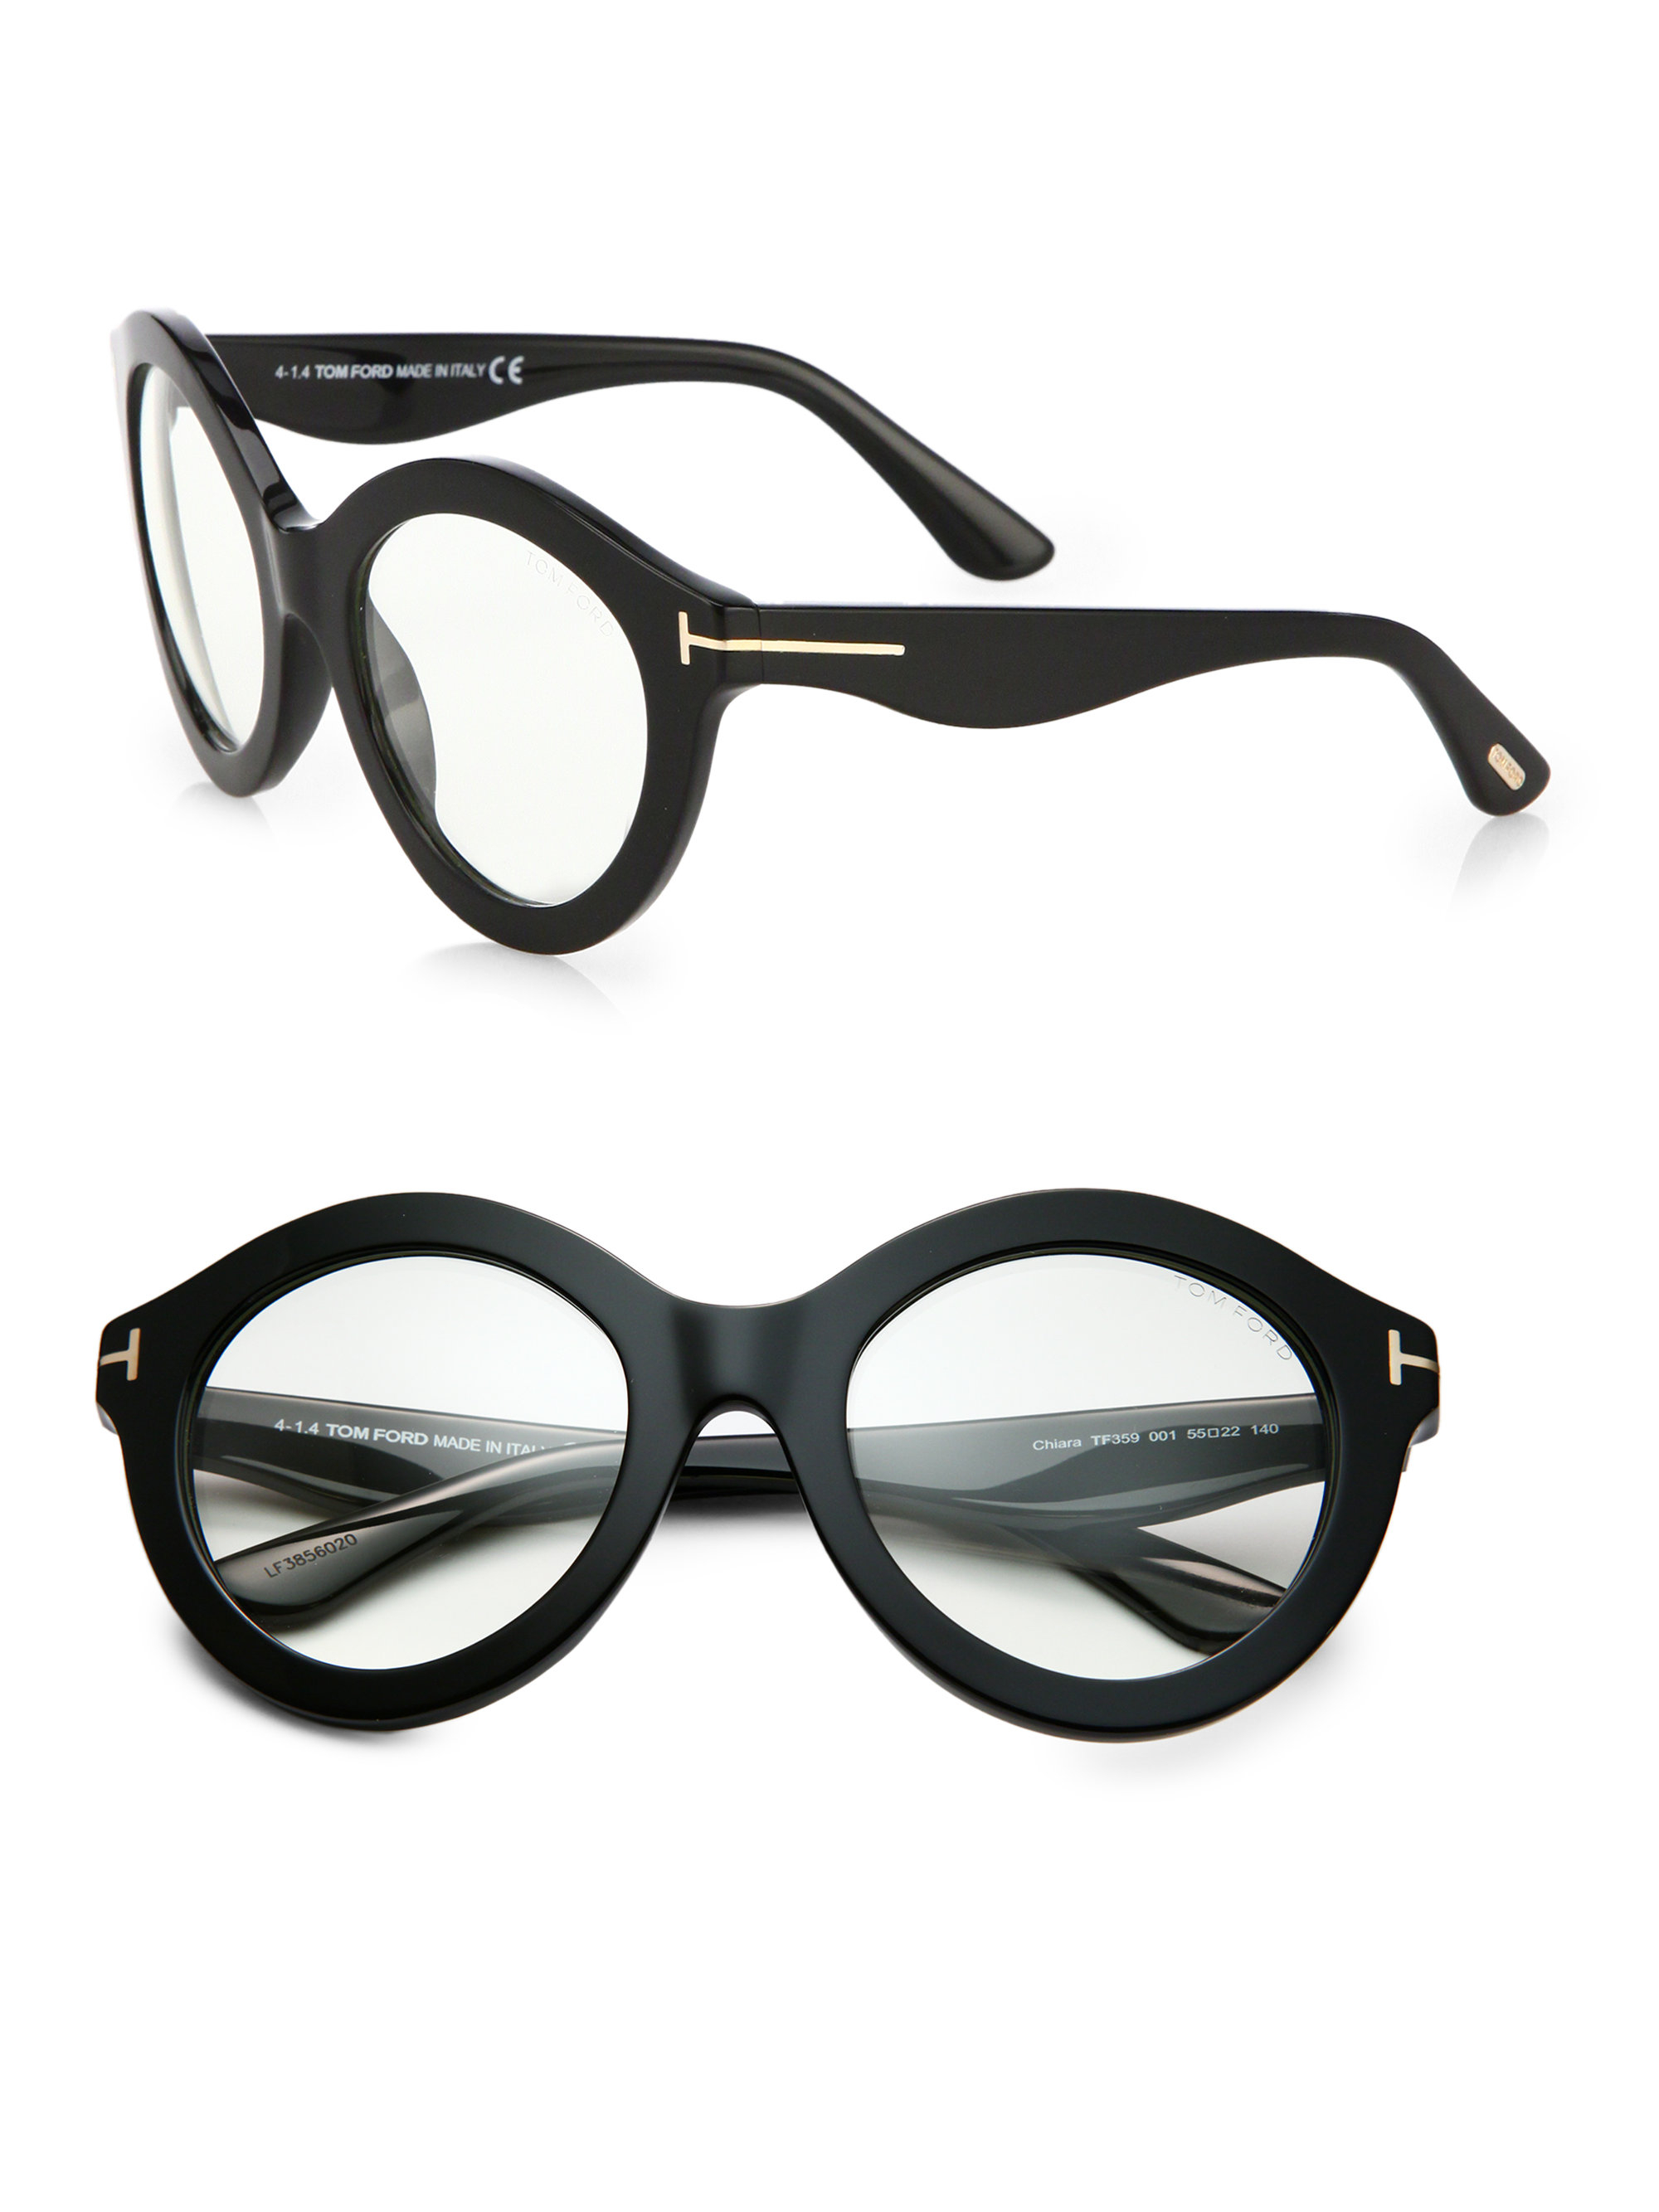 649426fb1afd Lyst - Tom Ford Exaggerated 55mm Round Optical Glasses in Black